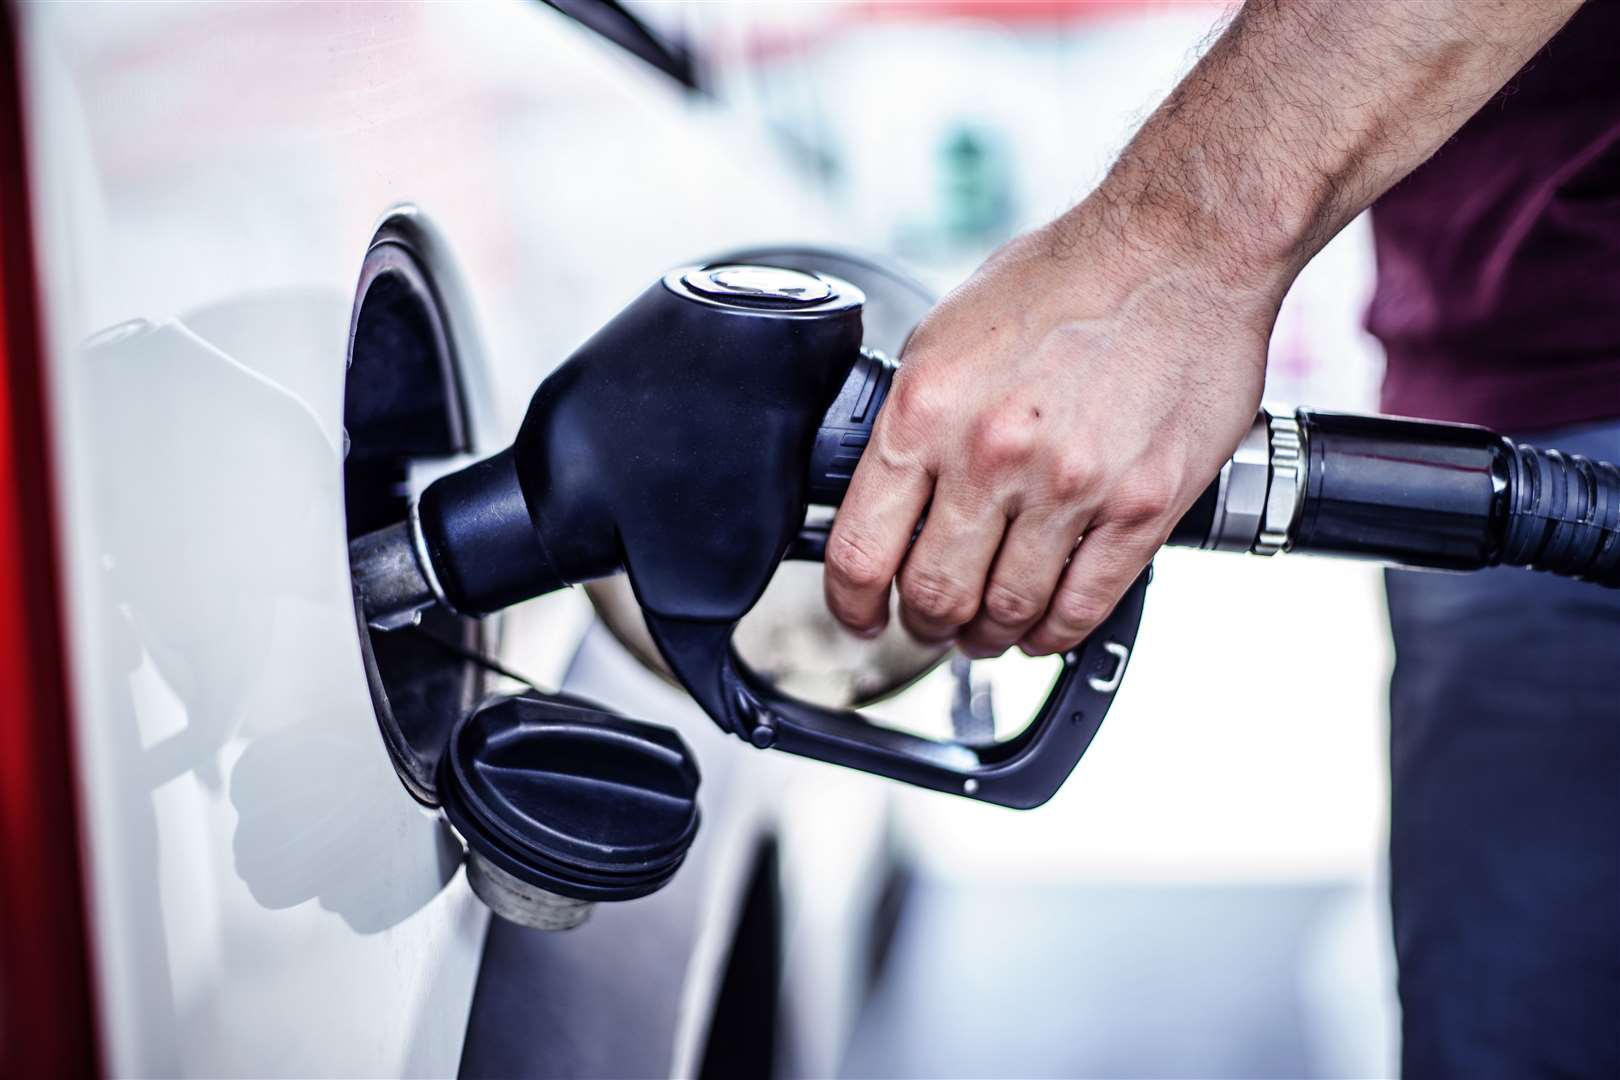 Panic at the pumps is leading people to use the wrong fuel, says the AA